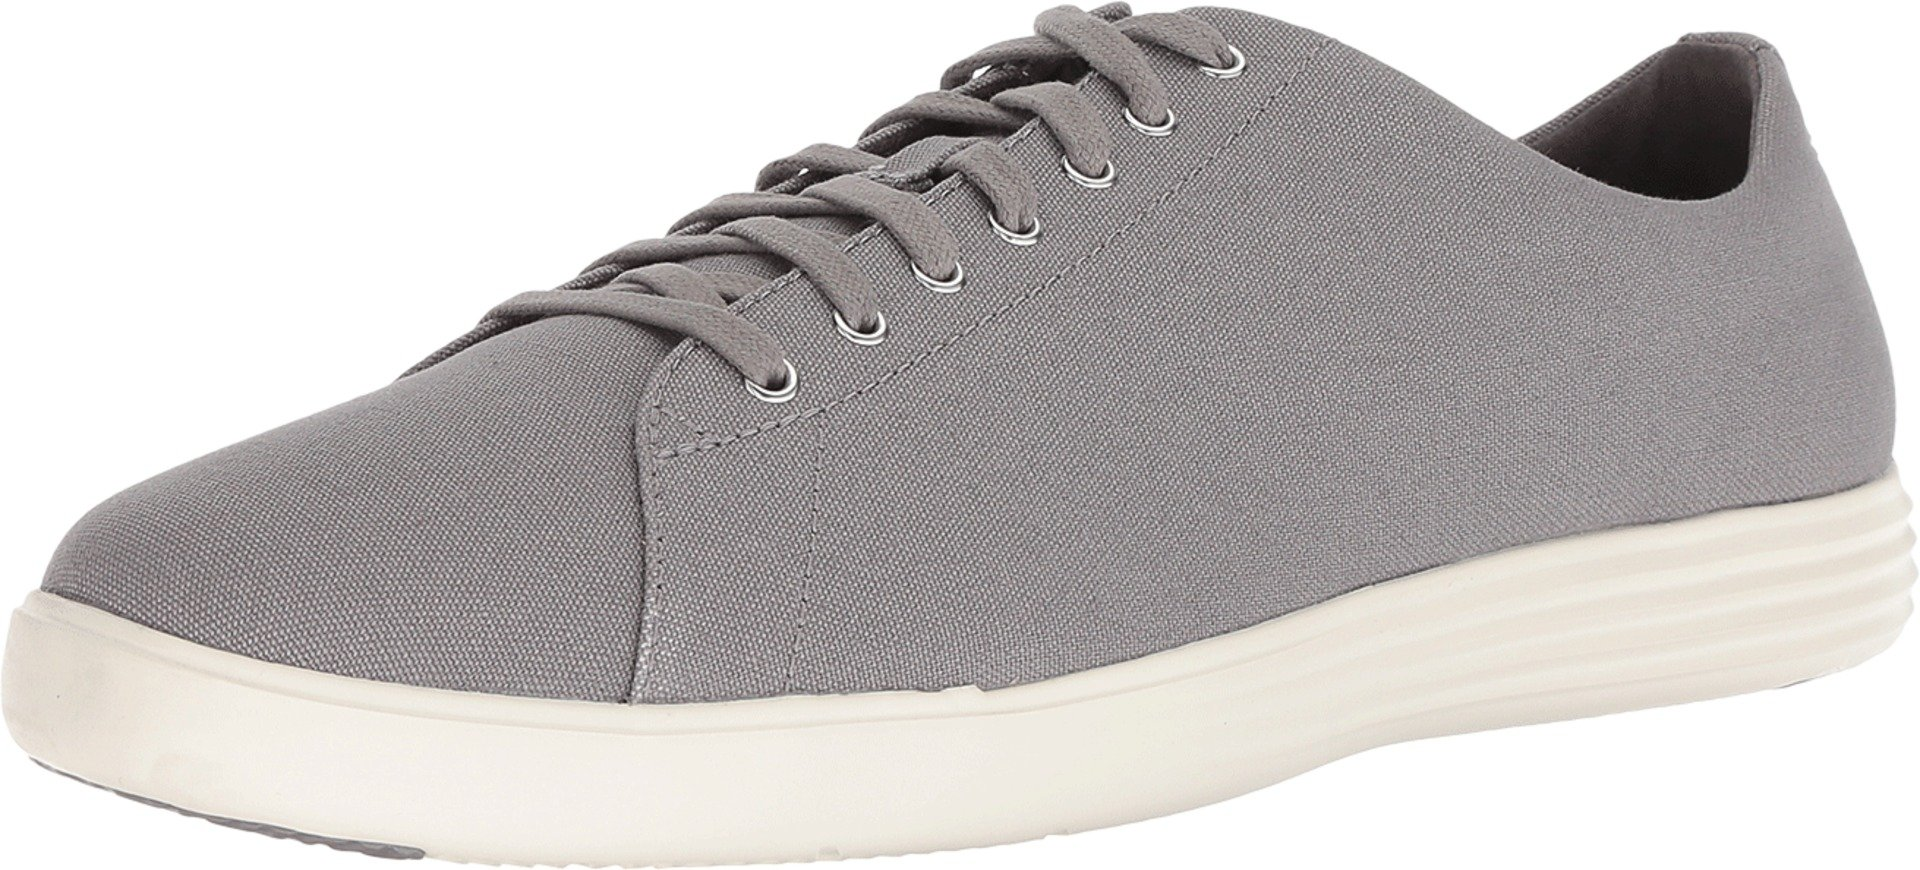 Cole Haan Men's Grand Crosscourt Sneaker 8.5 Ironstone Canvas by Cole Haan